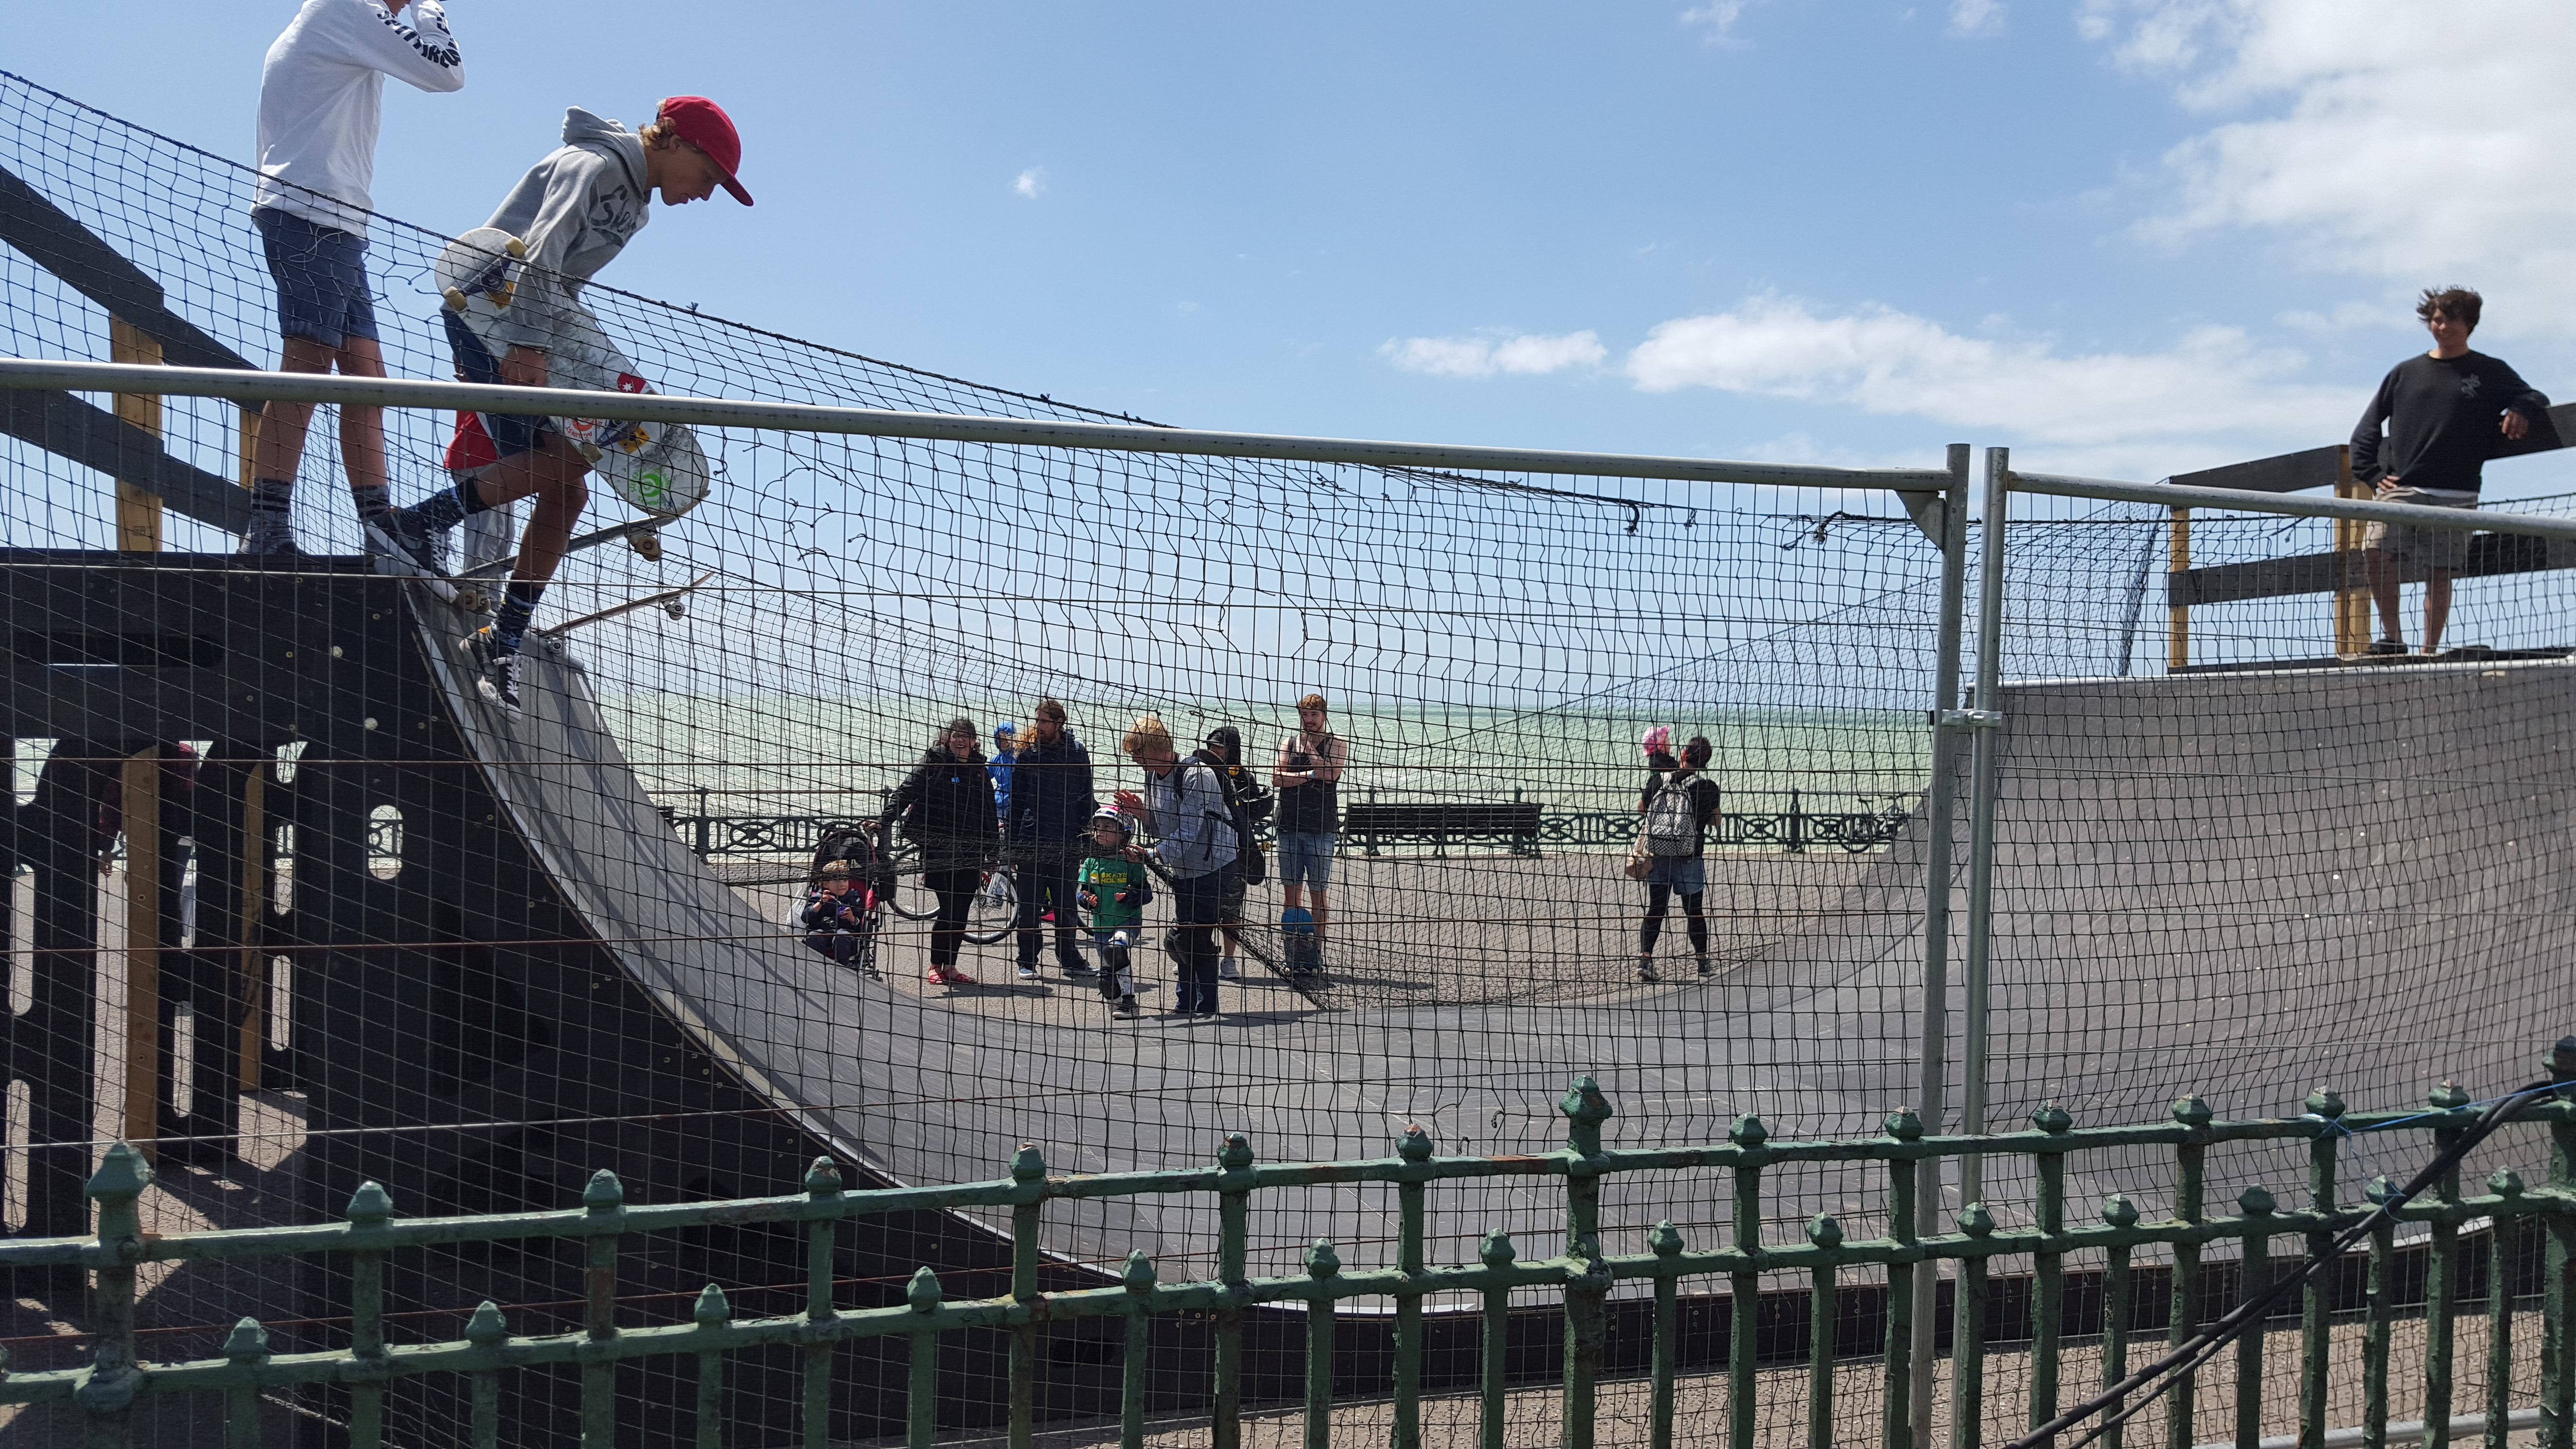 Skate ramp at Paddle Round the Pier